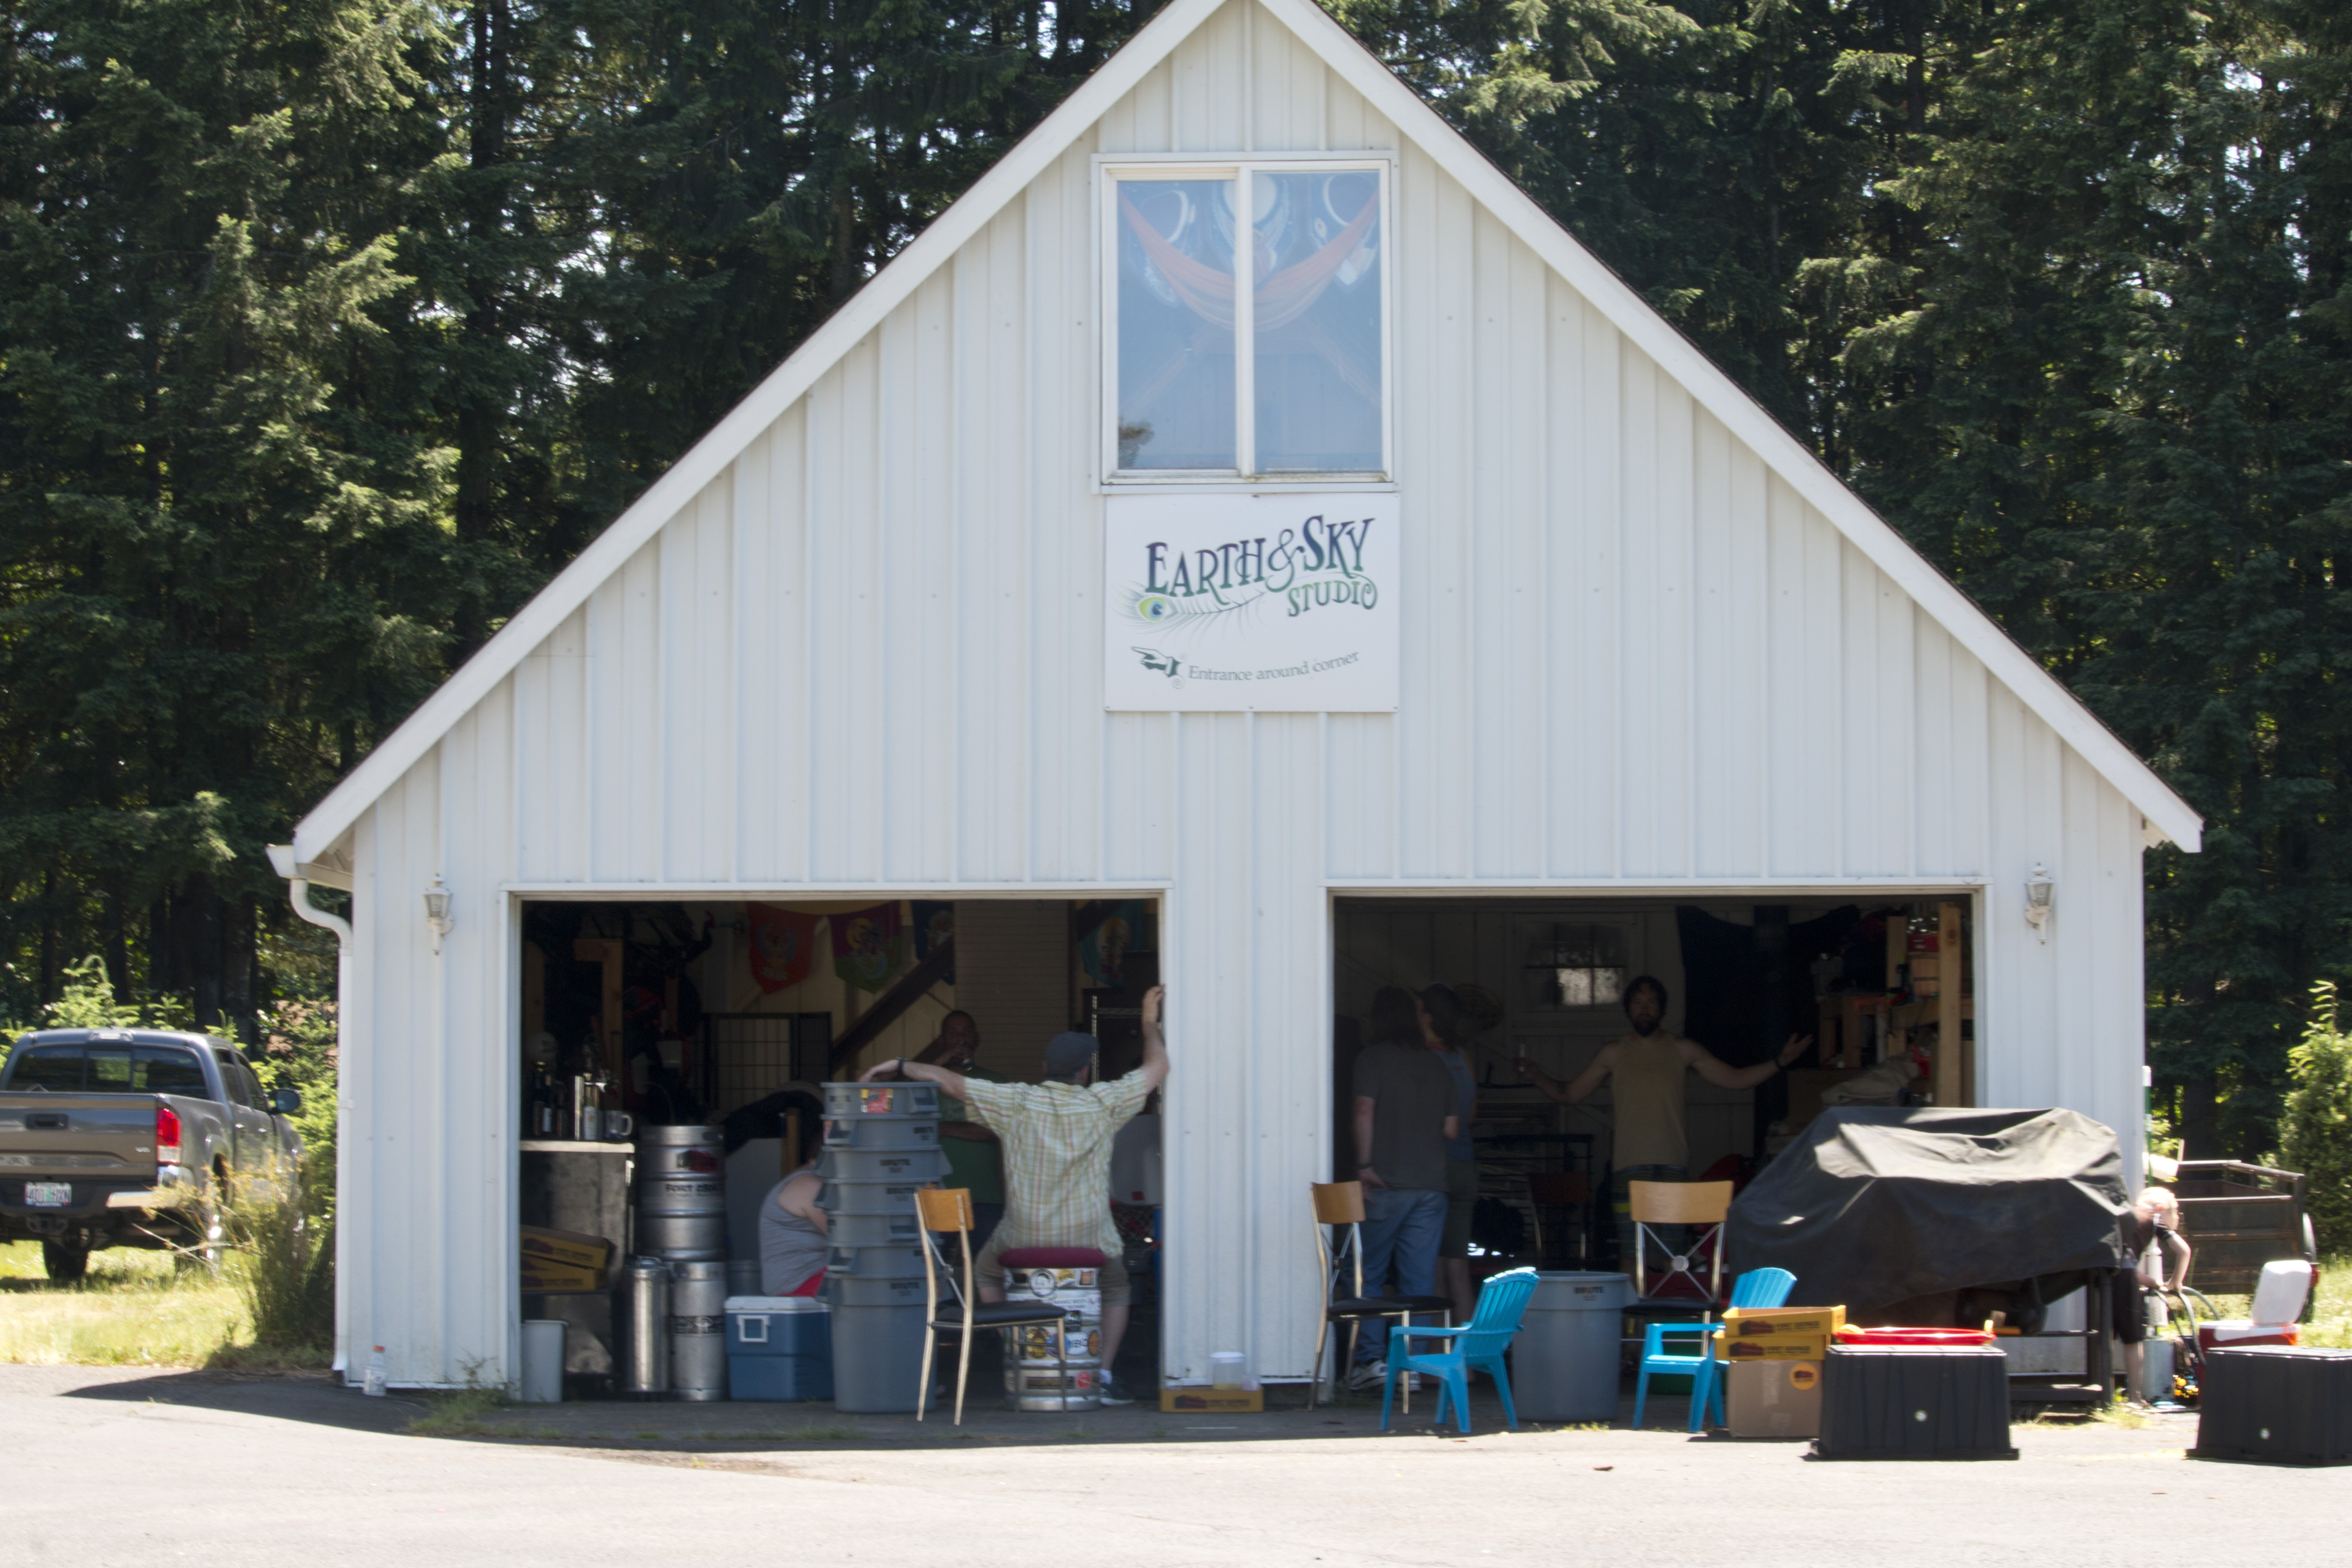 Earth Sky Farm where the fir tips were harvested to produce Magnanimous IPA. (image courtesy of Fort George Brewery)